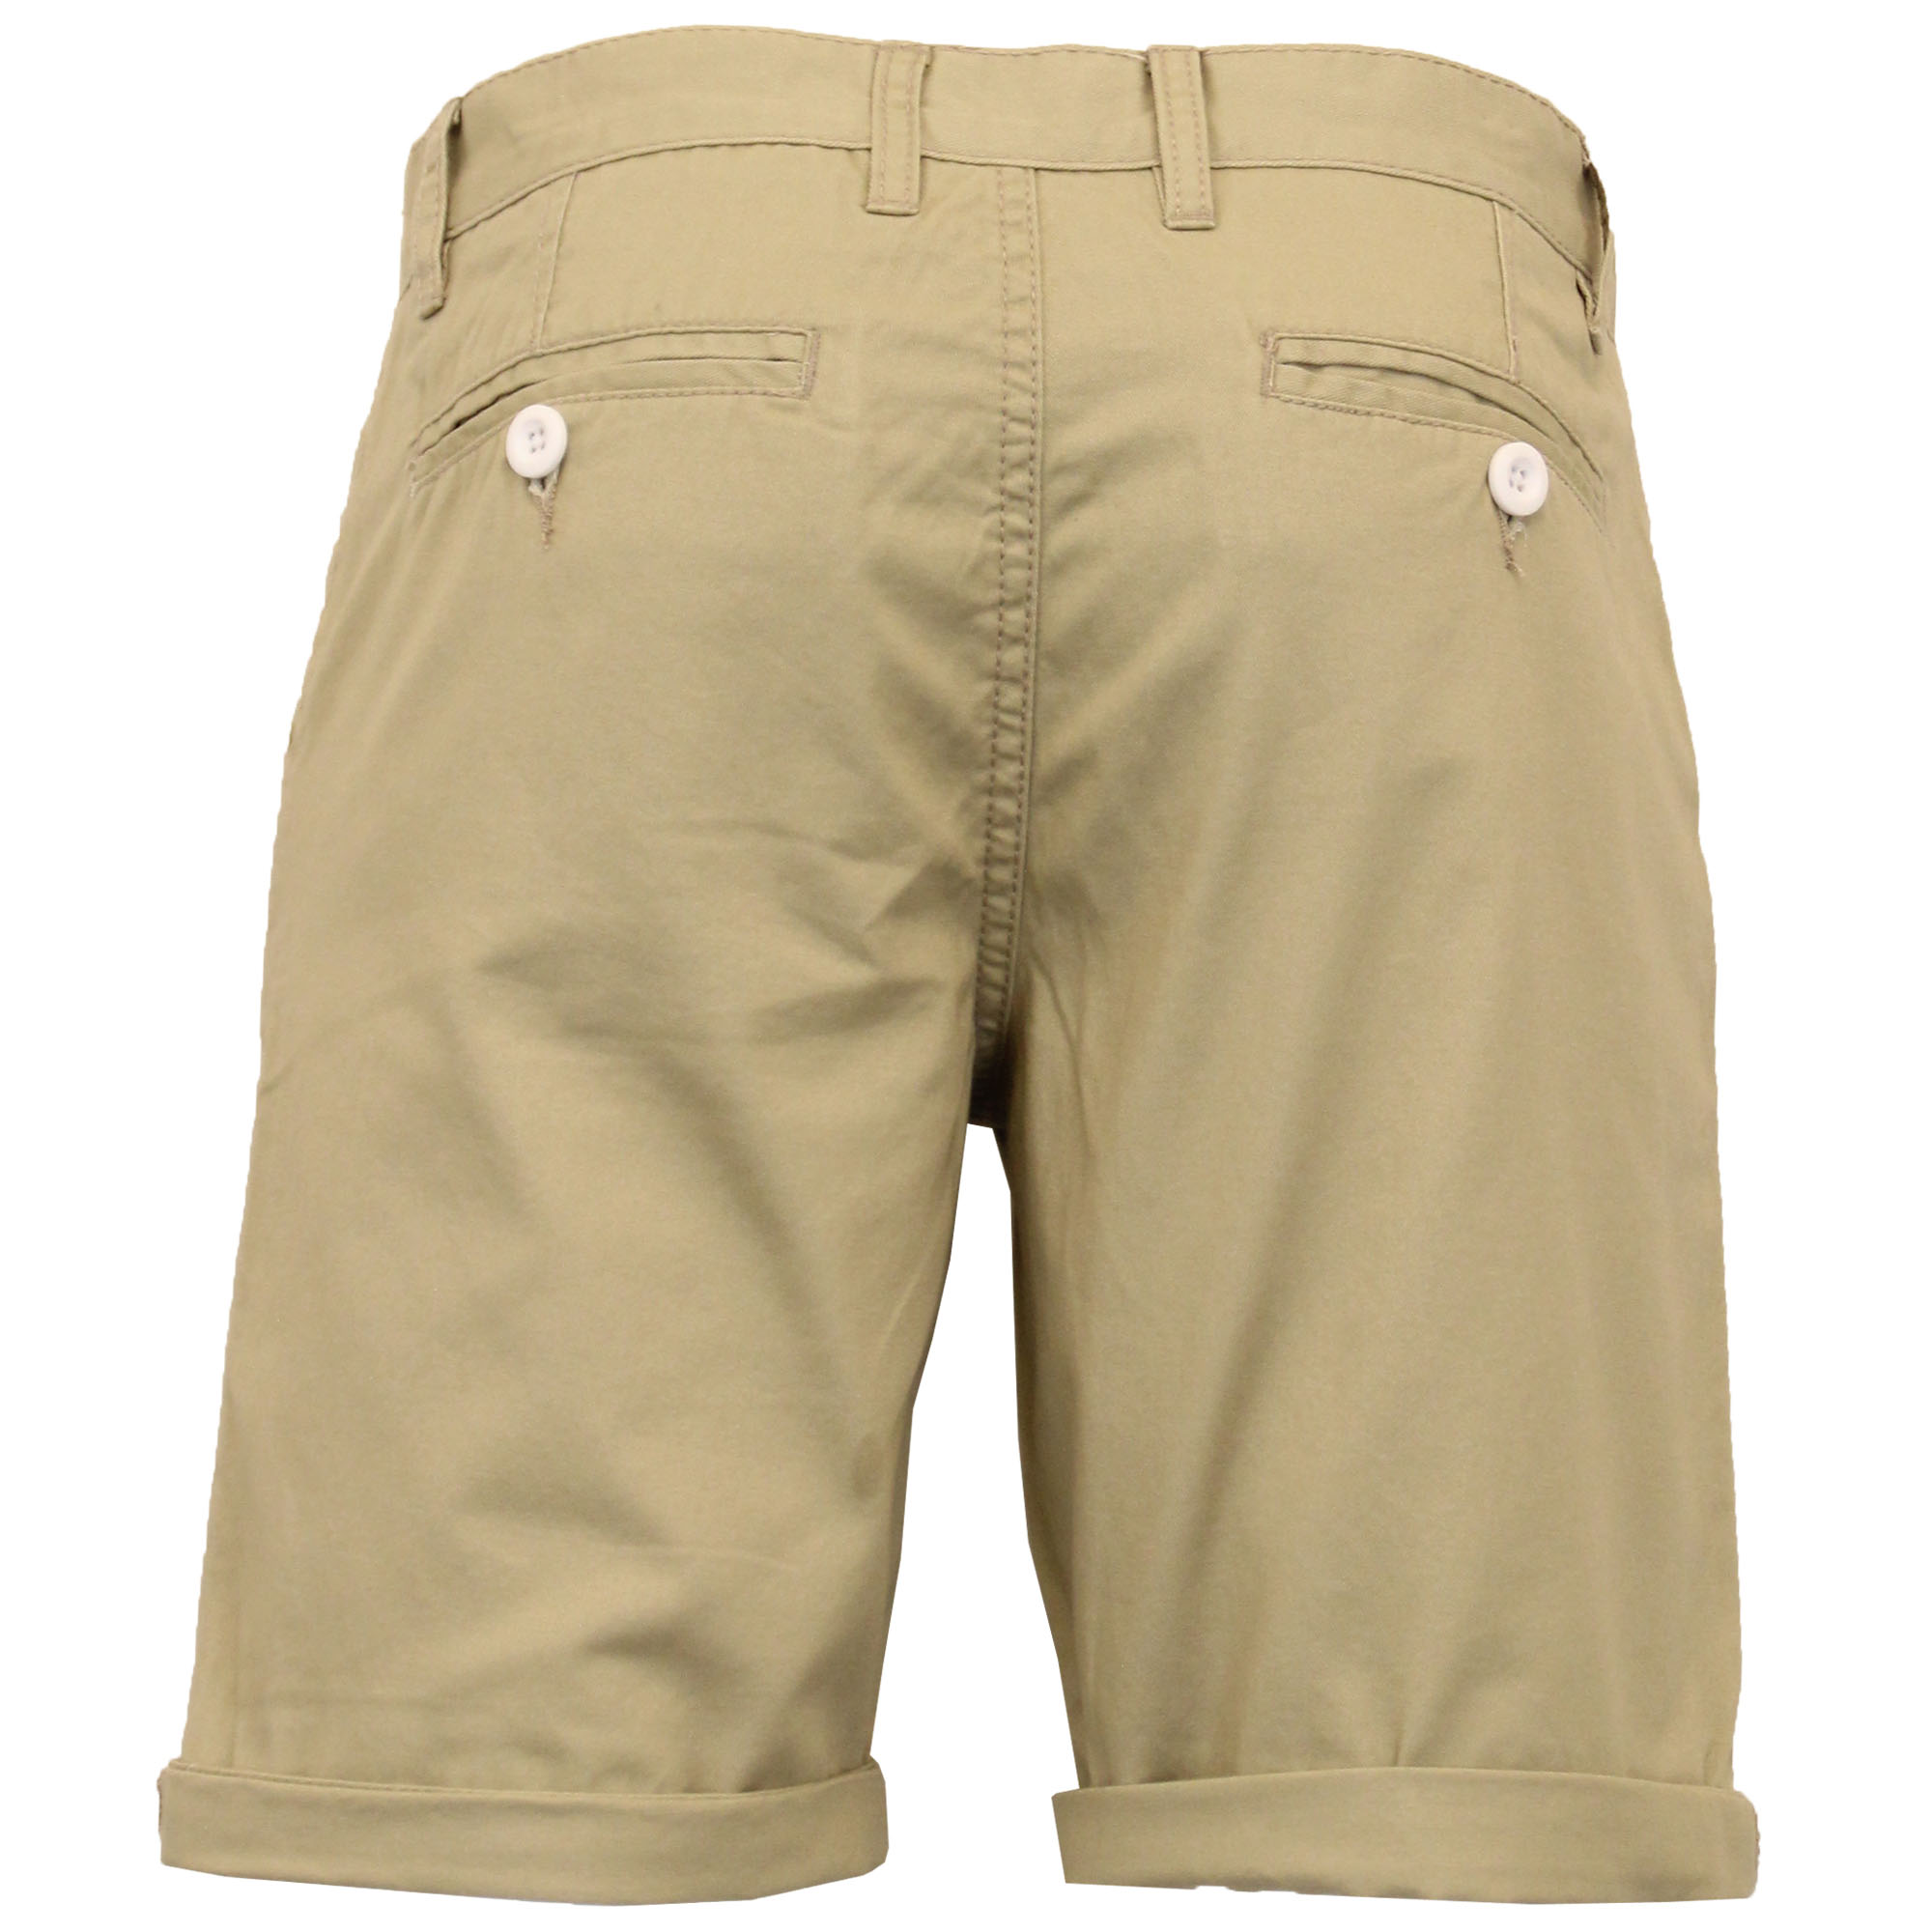 Mens-Chino-Shorts-Threadbare-Pants-Westace-Stallion-Knee-Length-Roll-Up-Summer thumbnail 3